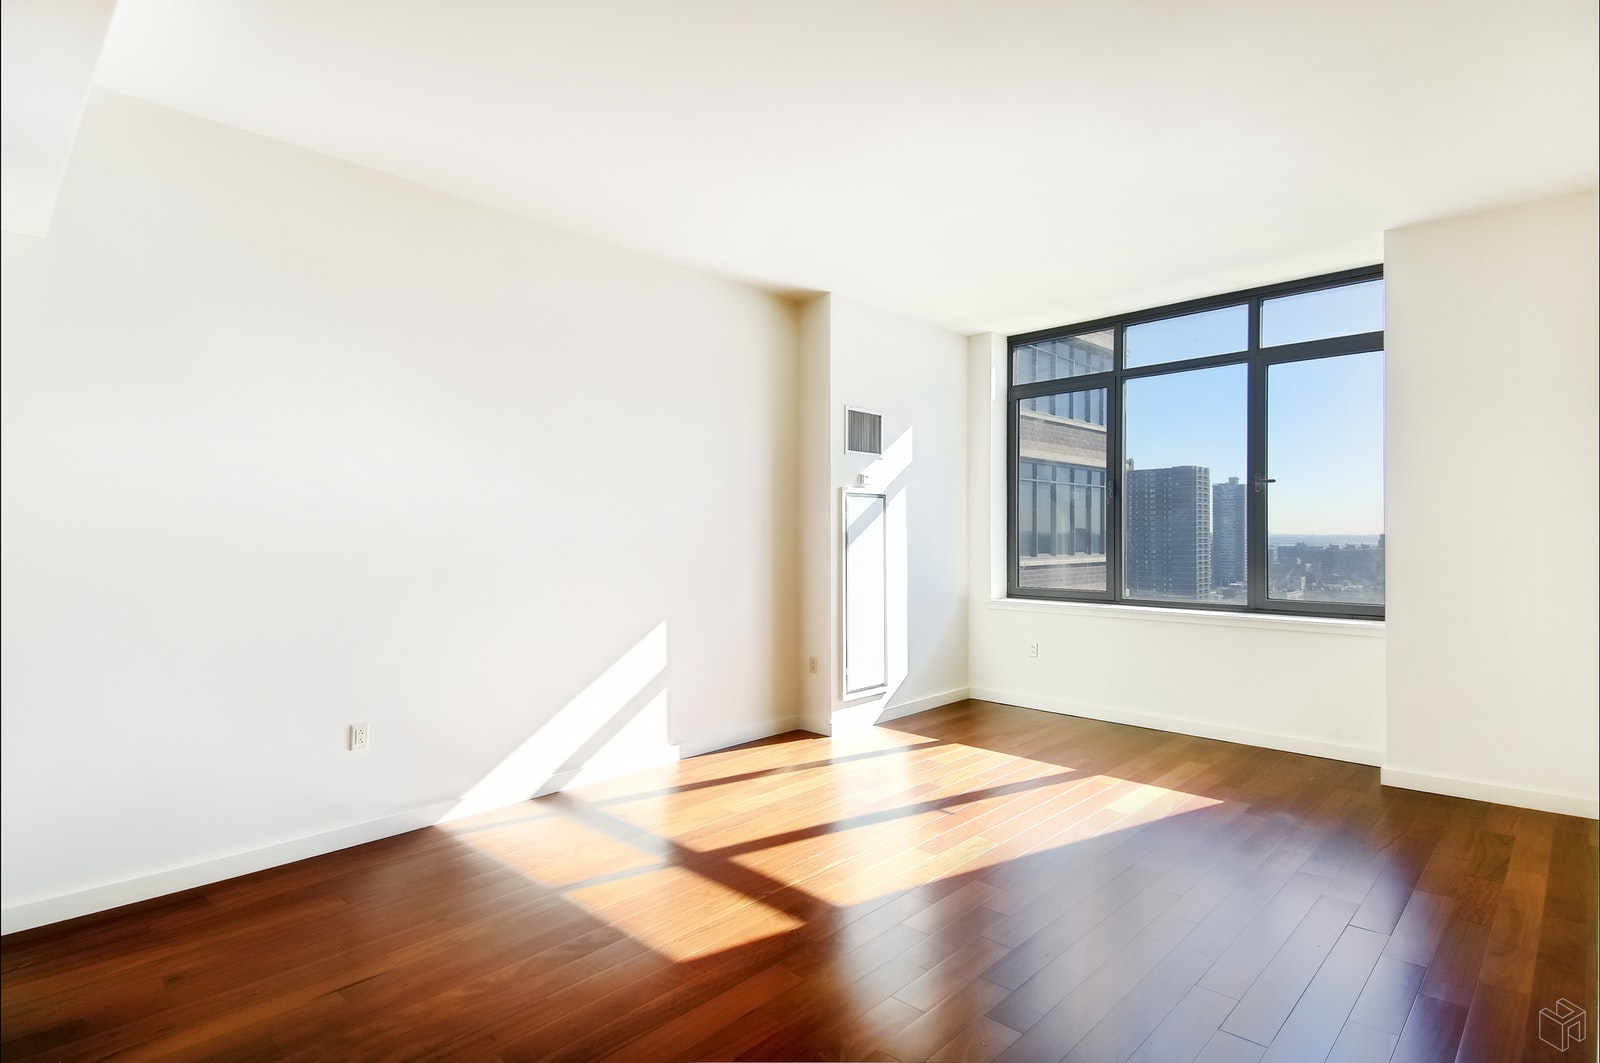 1485 5th Avenue 9e, Upper Manhattan, NYC, 10035, Price Not Disclosed, Rented Property, Halstead Real Estate, Photo 2